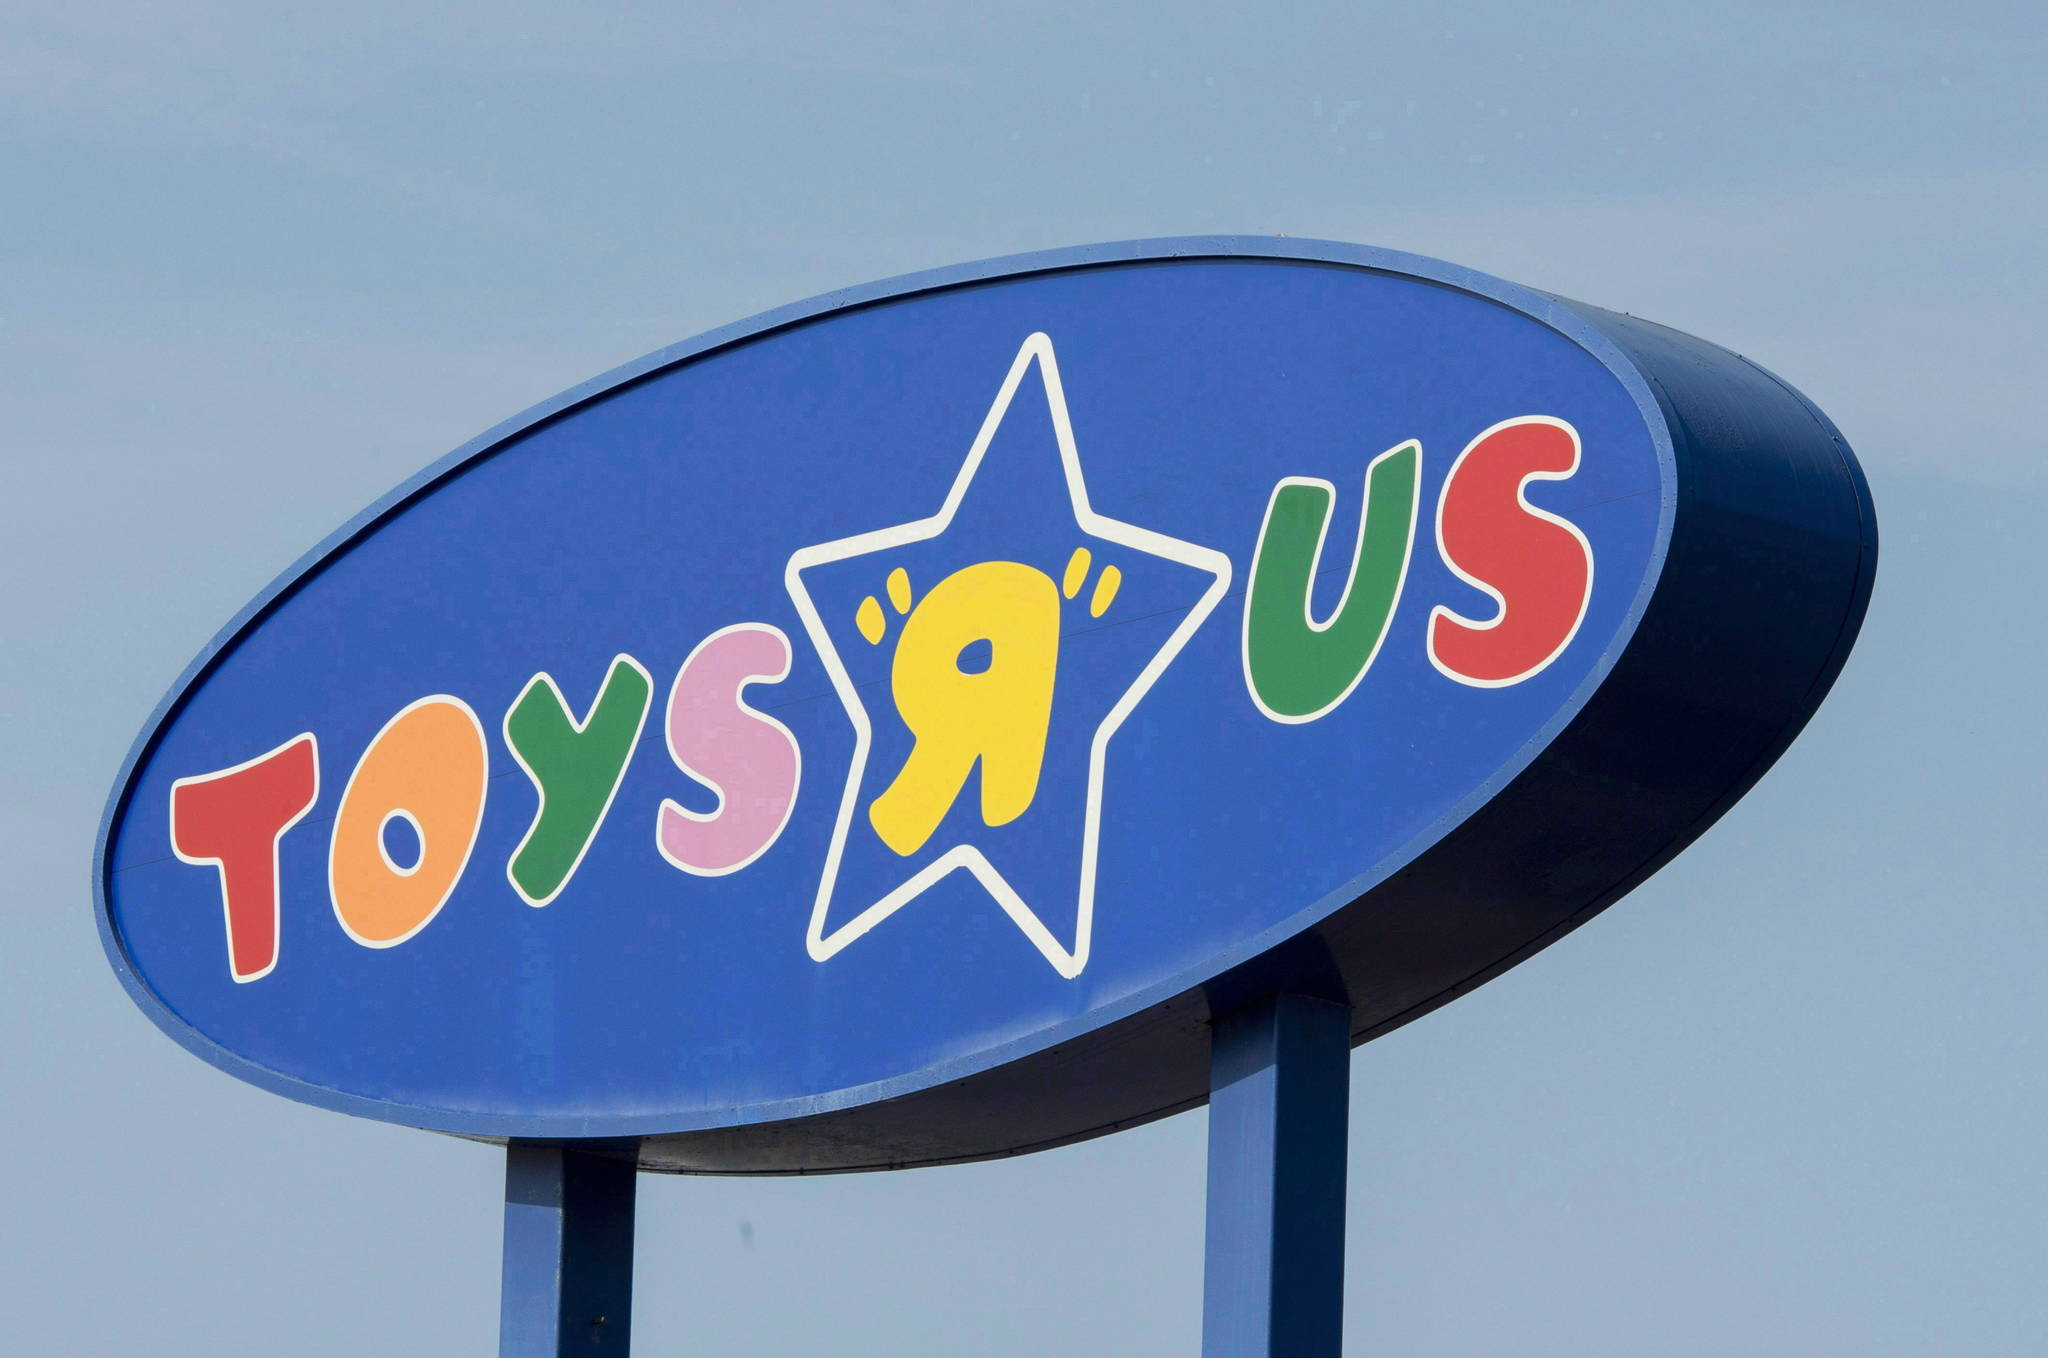 """A Toys """"R"""" Us sign is seen in Montreal on September 19, 2017. THE CANADIAN PRESS/Paul Chiasson"""